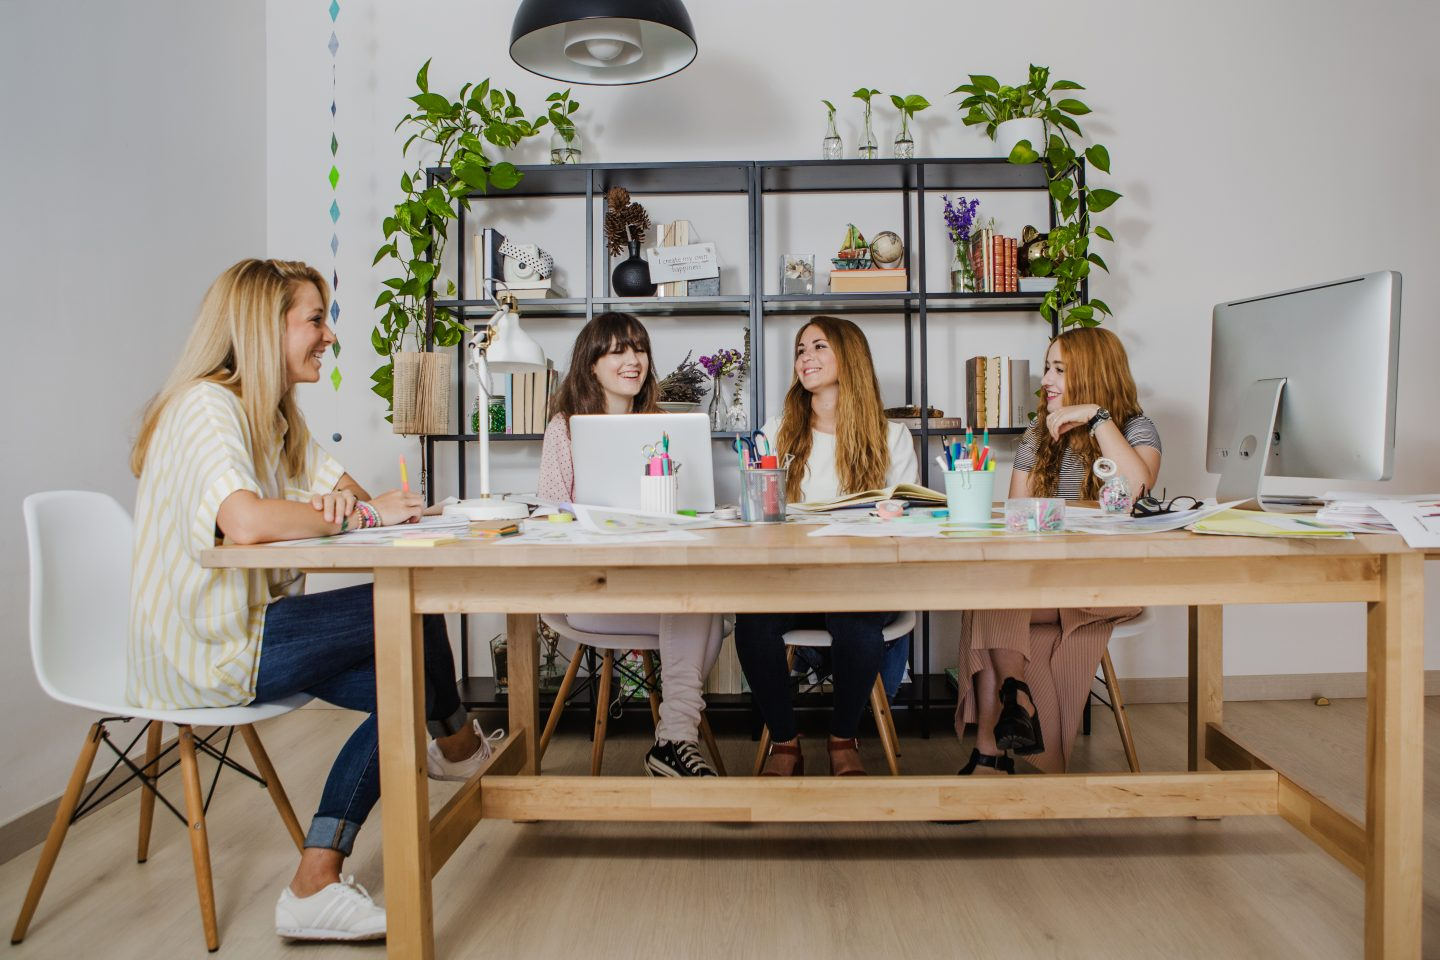 Photo of 4 women around a large desk with laptops.  There are also pens and paper on the desk.